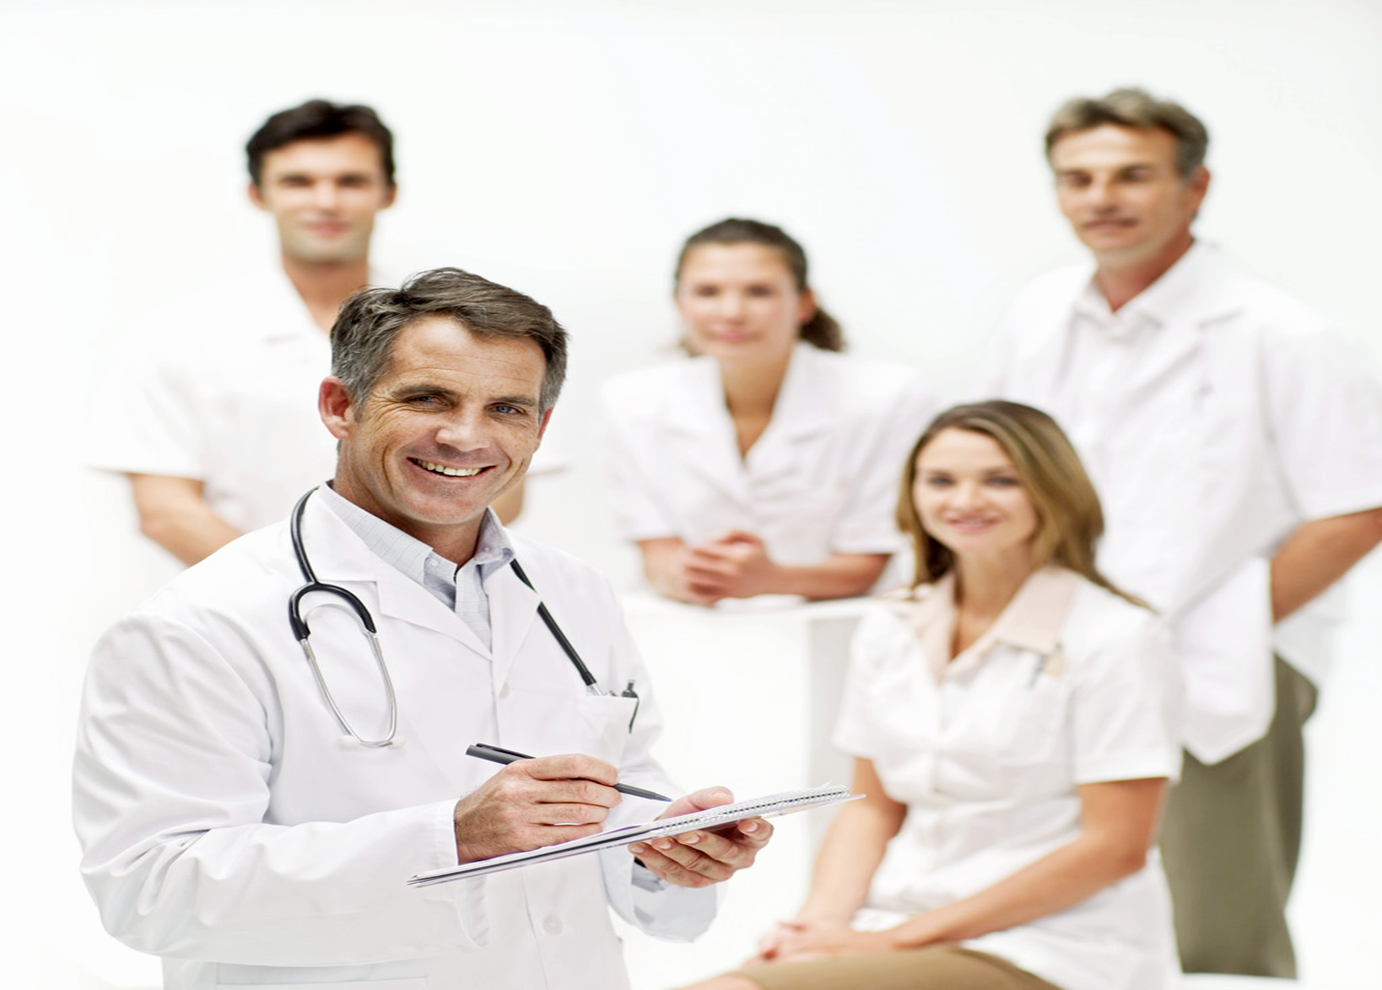 5 Factors to Evaluate Performance of your Medical Billing Company